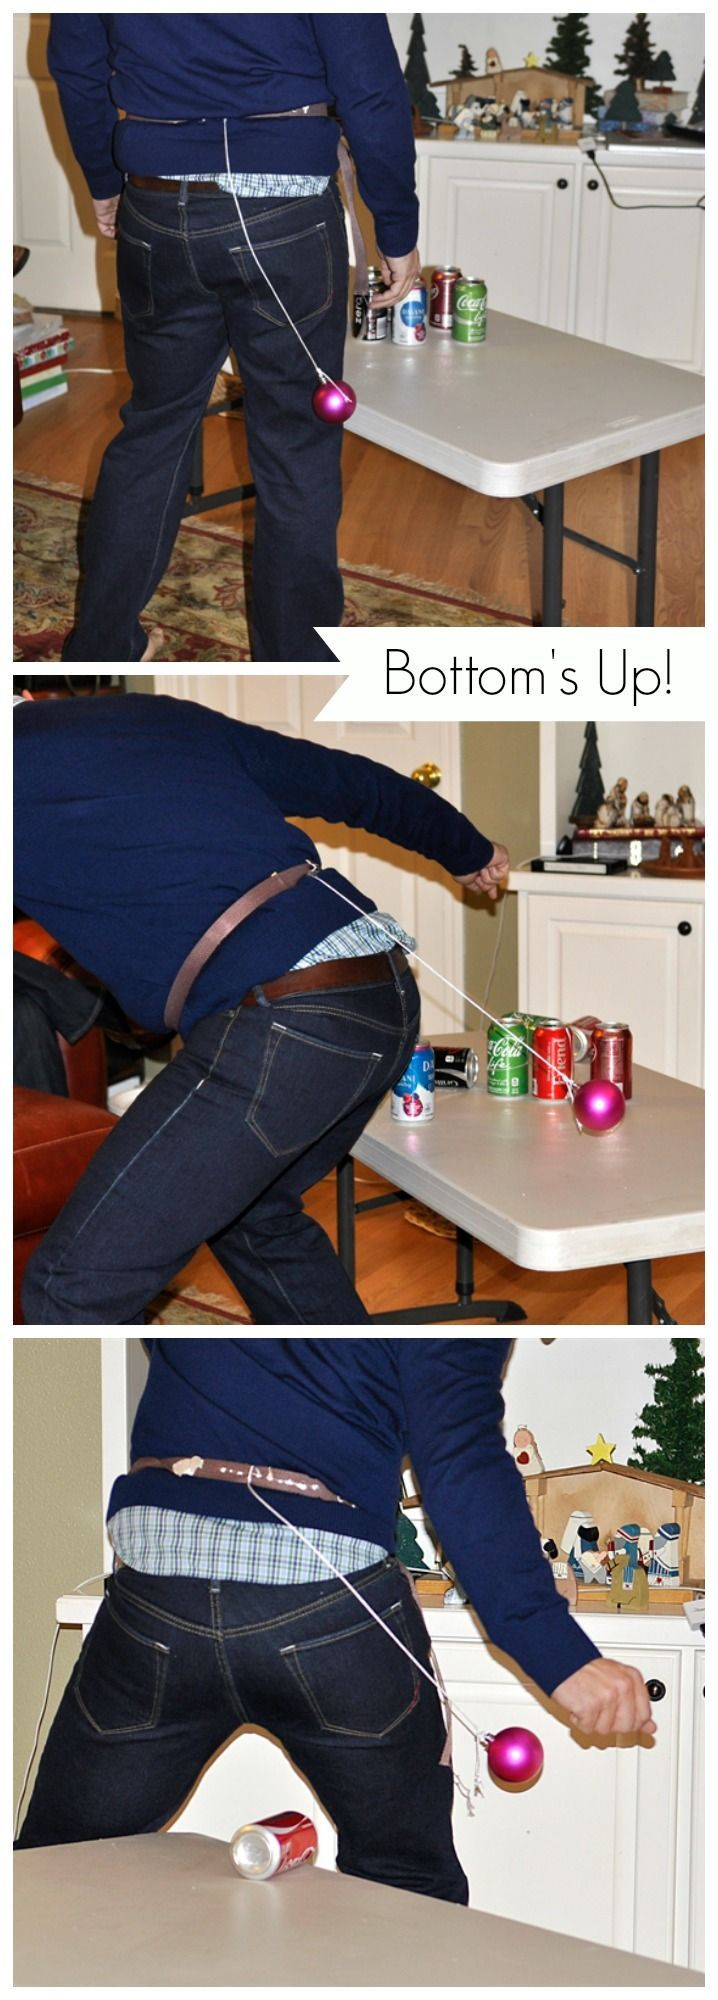 Bottom's UP Supplies Required: 4-8 empty soda cans placed on a table A Christmas ornament on a string attached to some type of belt. In 60 seconds the player must knock all the soda cans off the table using the ornament.  No hands allowed.  Move those hips!